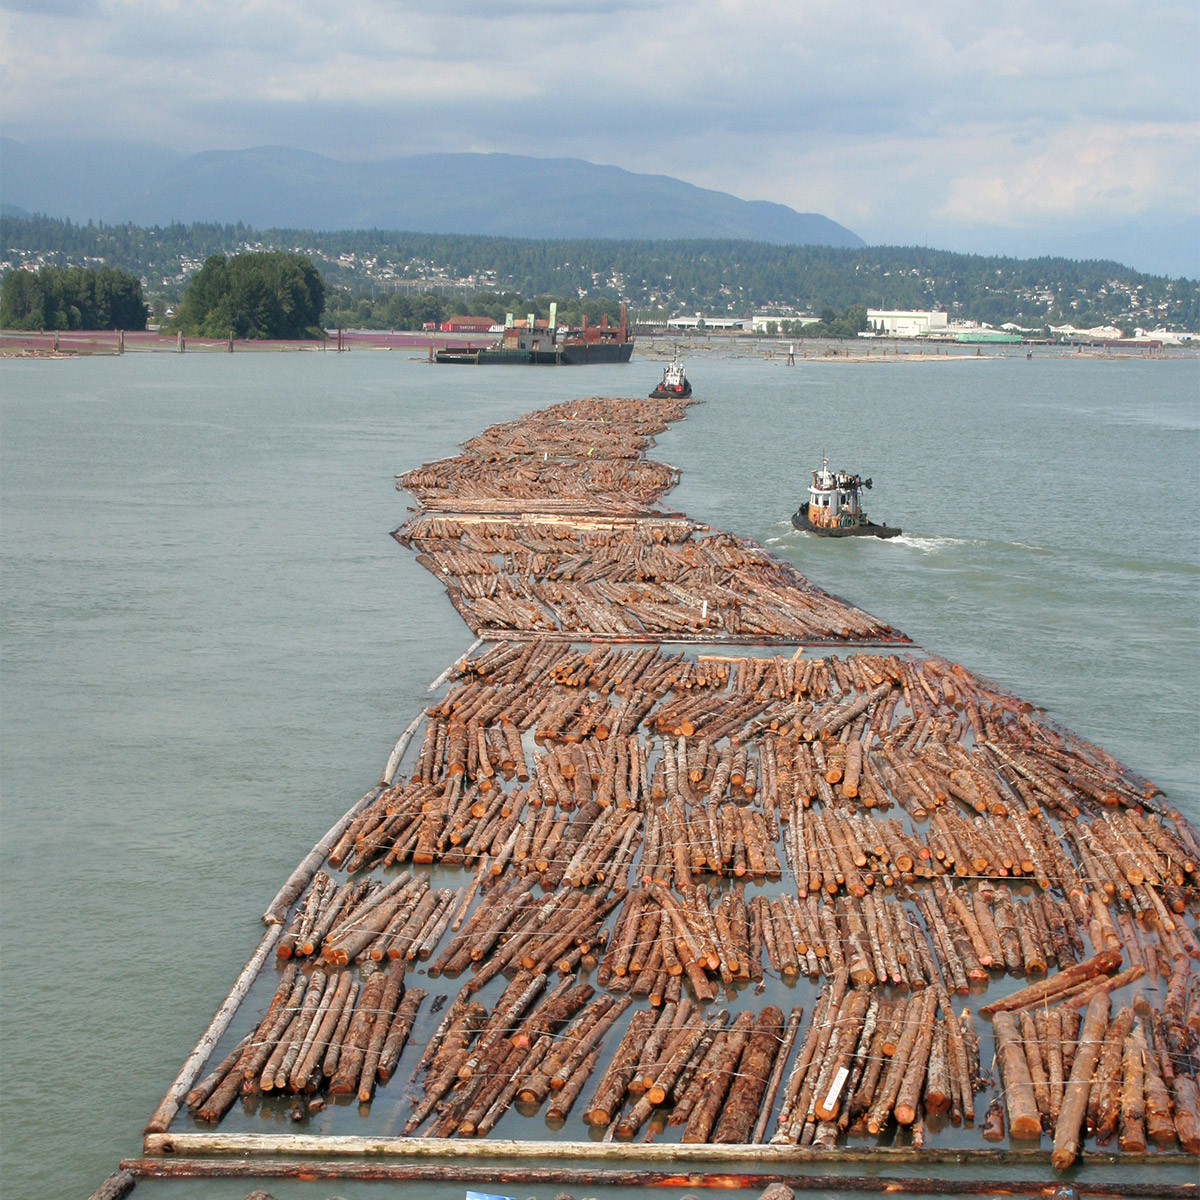 The Lumber Industry Responds To The Rise Of Mass Timber